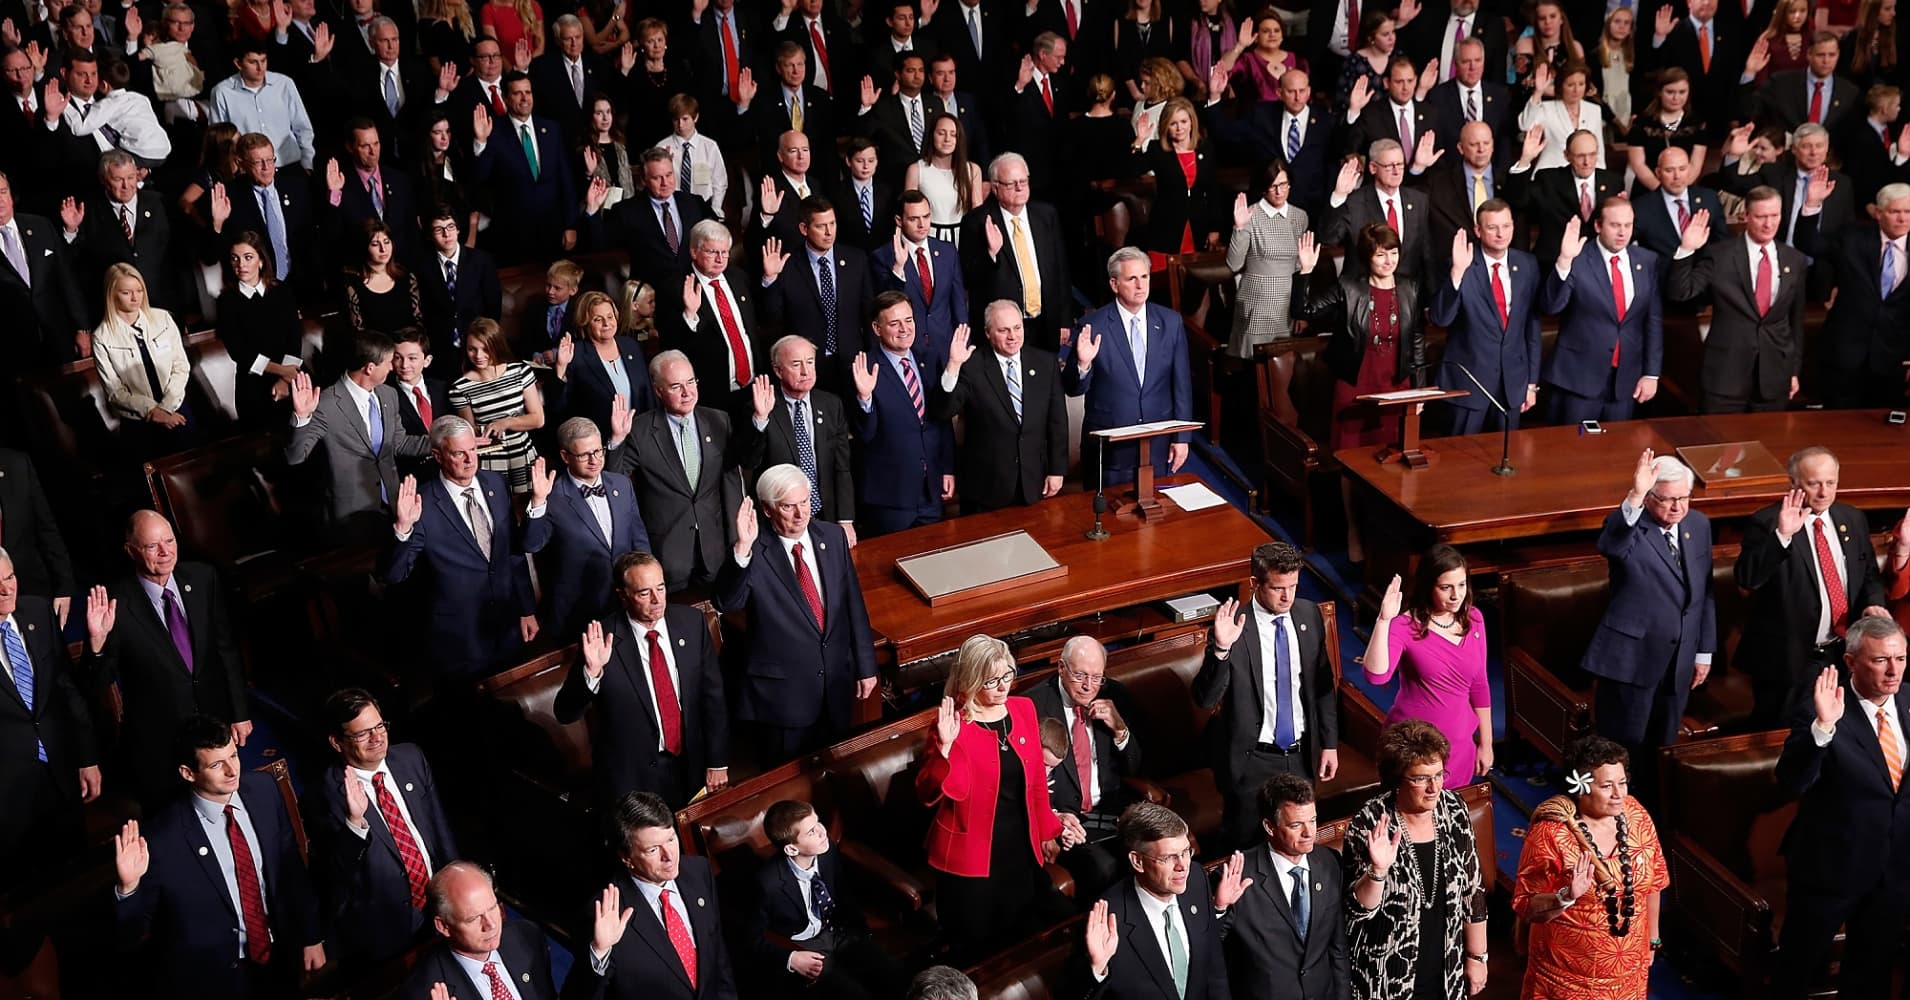 Members of the 115th U.S. Congress take their oath of office on the floor of the House of Representaives January 3, 2017 in Washington, DC.